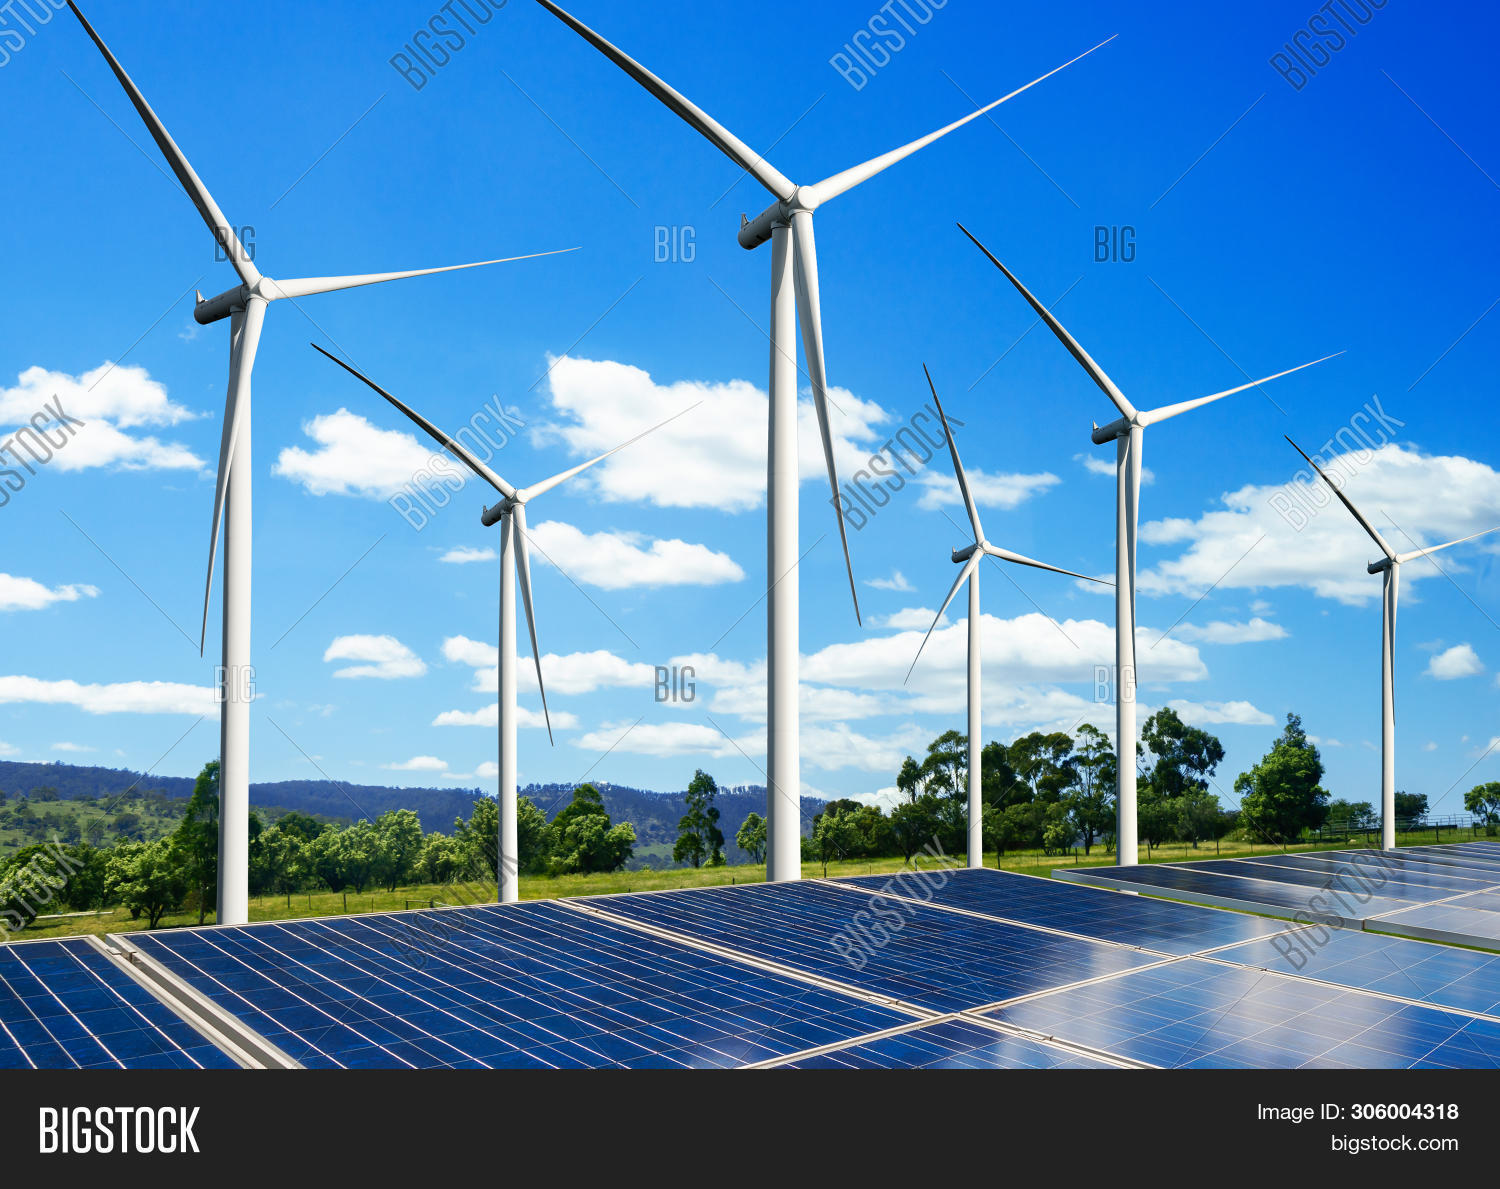 alternative,blue,business,cell,clean,concept,development,earth,ecology,economy,electricity,energy,environment,farm,fuel,global,green,hill,industry,meadow,mountain,nature,panel,photovoltaic,power,production,renewable,saving,sky,solar,station,sun,sustainability,technology,turbine,warming,wind,windmill